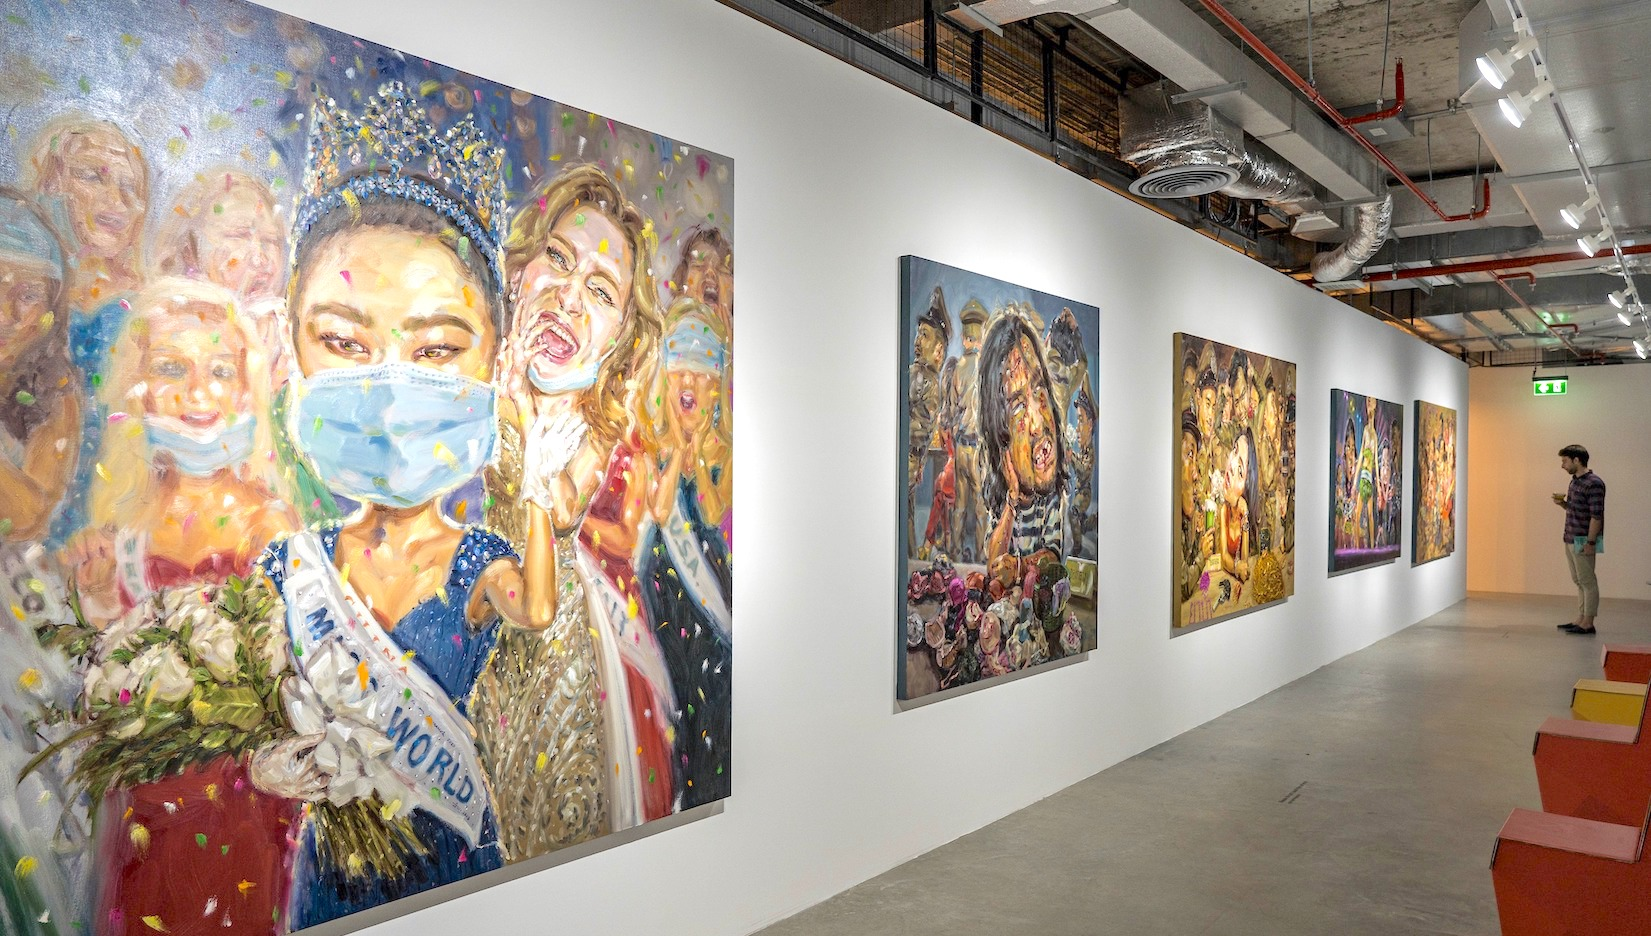 Please visit my works in Bangkok Art Biennale 2020 at BACC and The PARQ